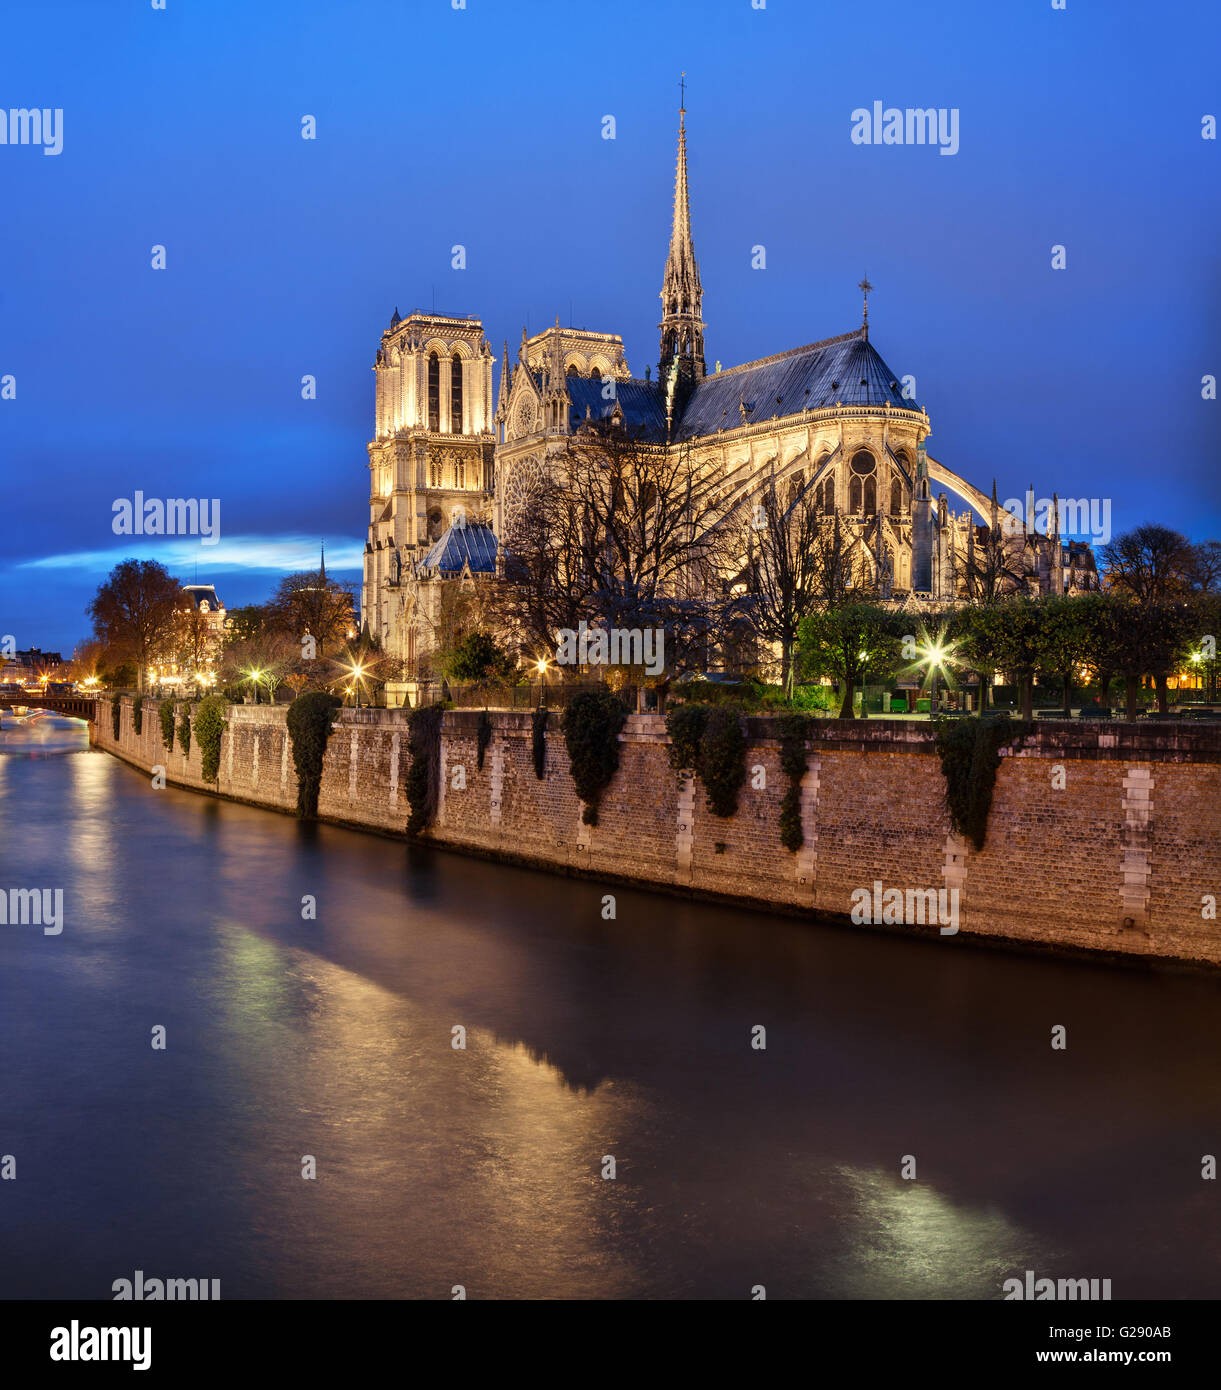 Paris, France: Notre Dame cathedral at dusk with Seine river on foreground - Stock Image